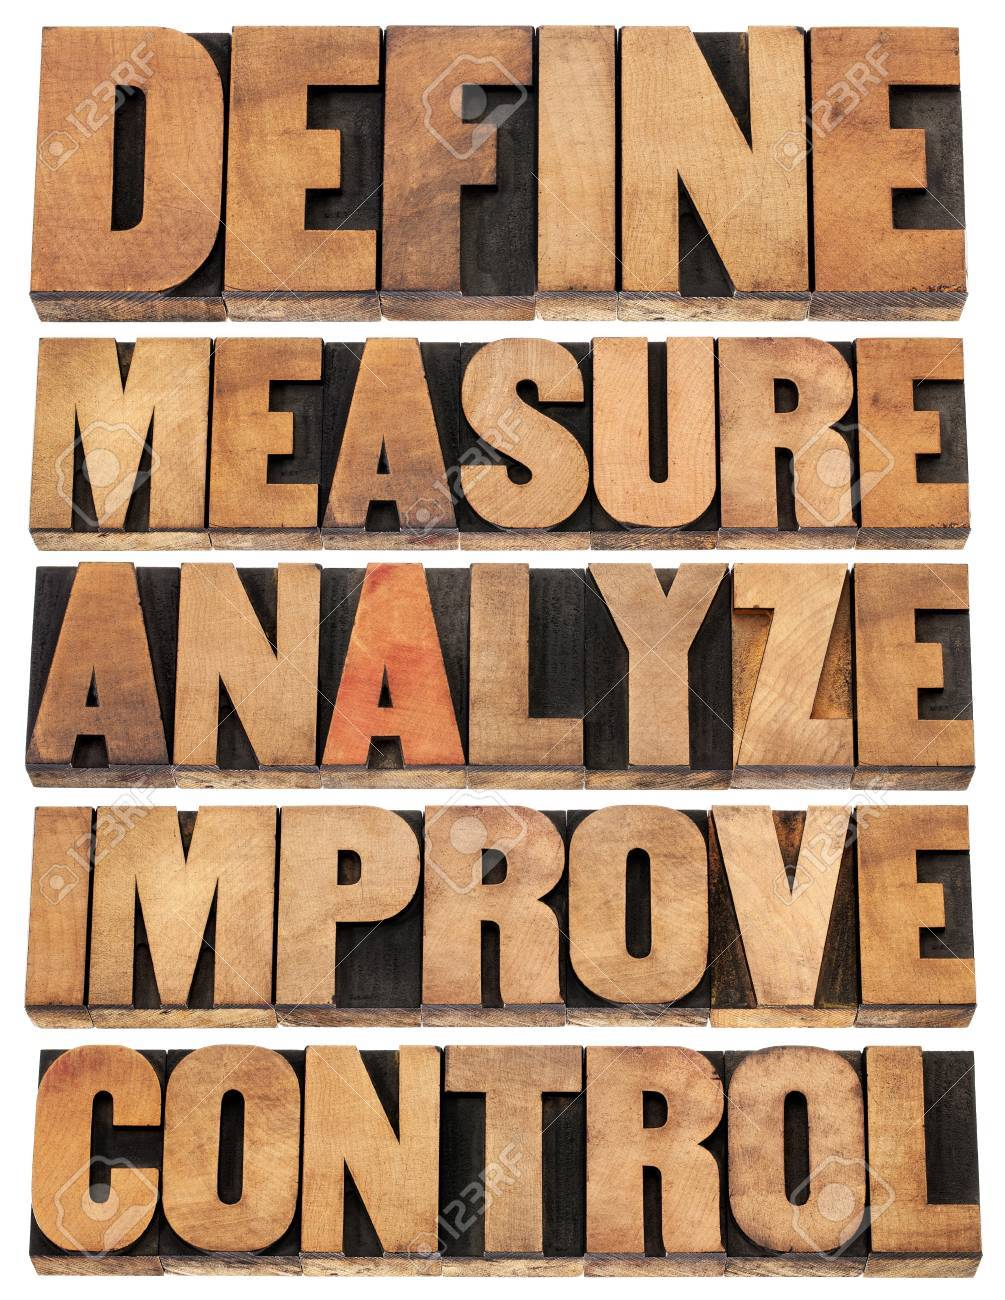 define, measure, analyze, improve, control - concept of continuous improvement process or cycle - isolated words in letterpress wood type blocks Stock Photo - 18792213